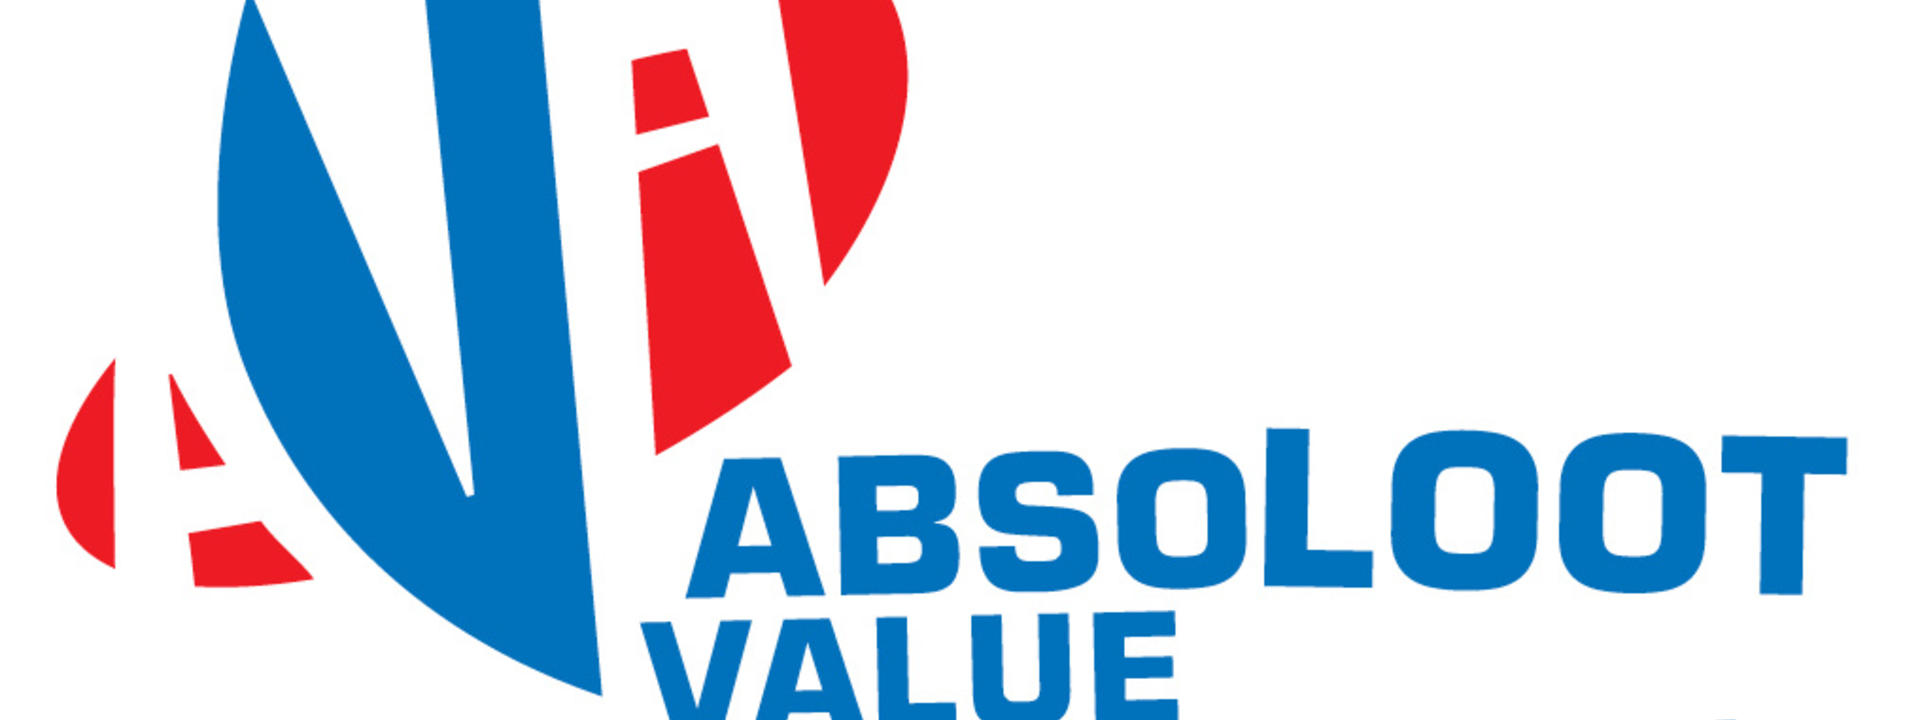 Logo: Absoloot Value Accommodation